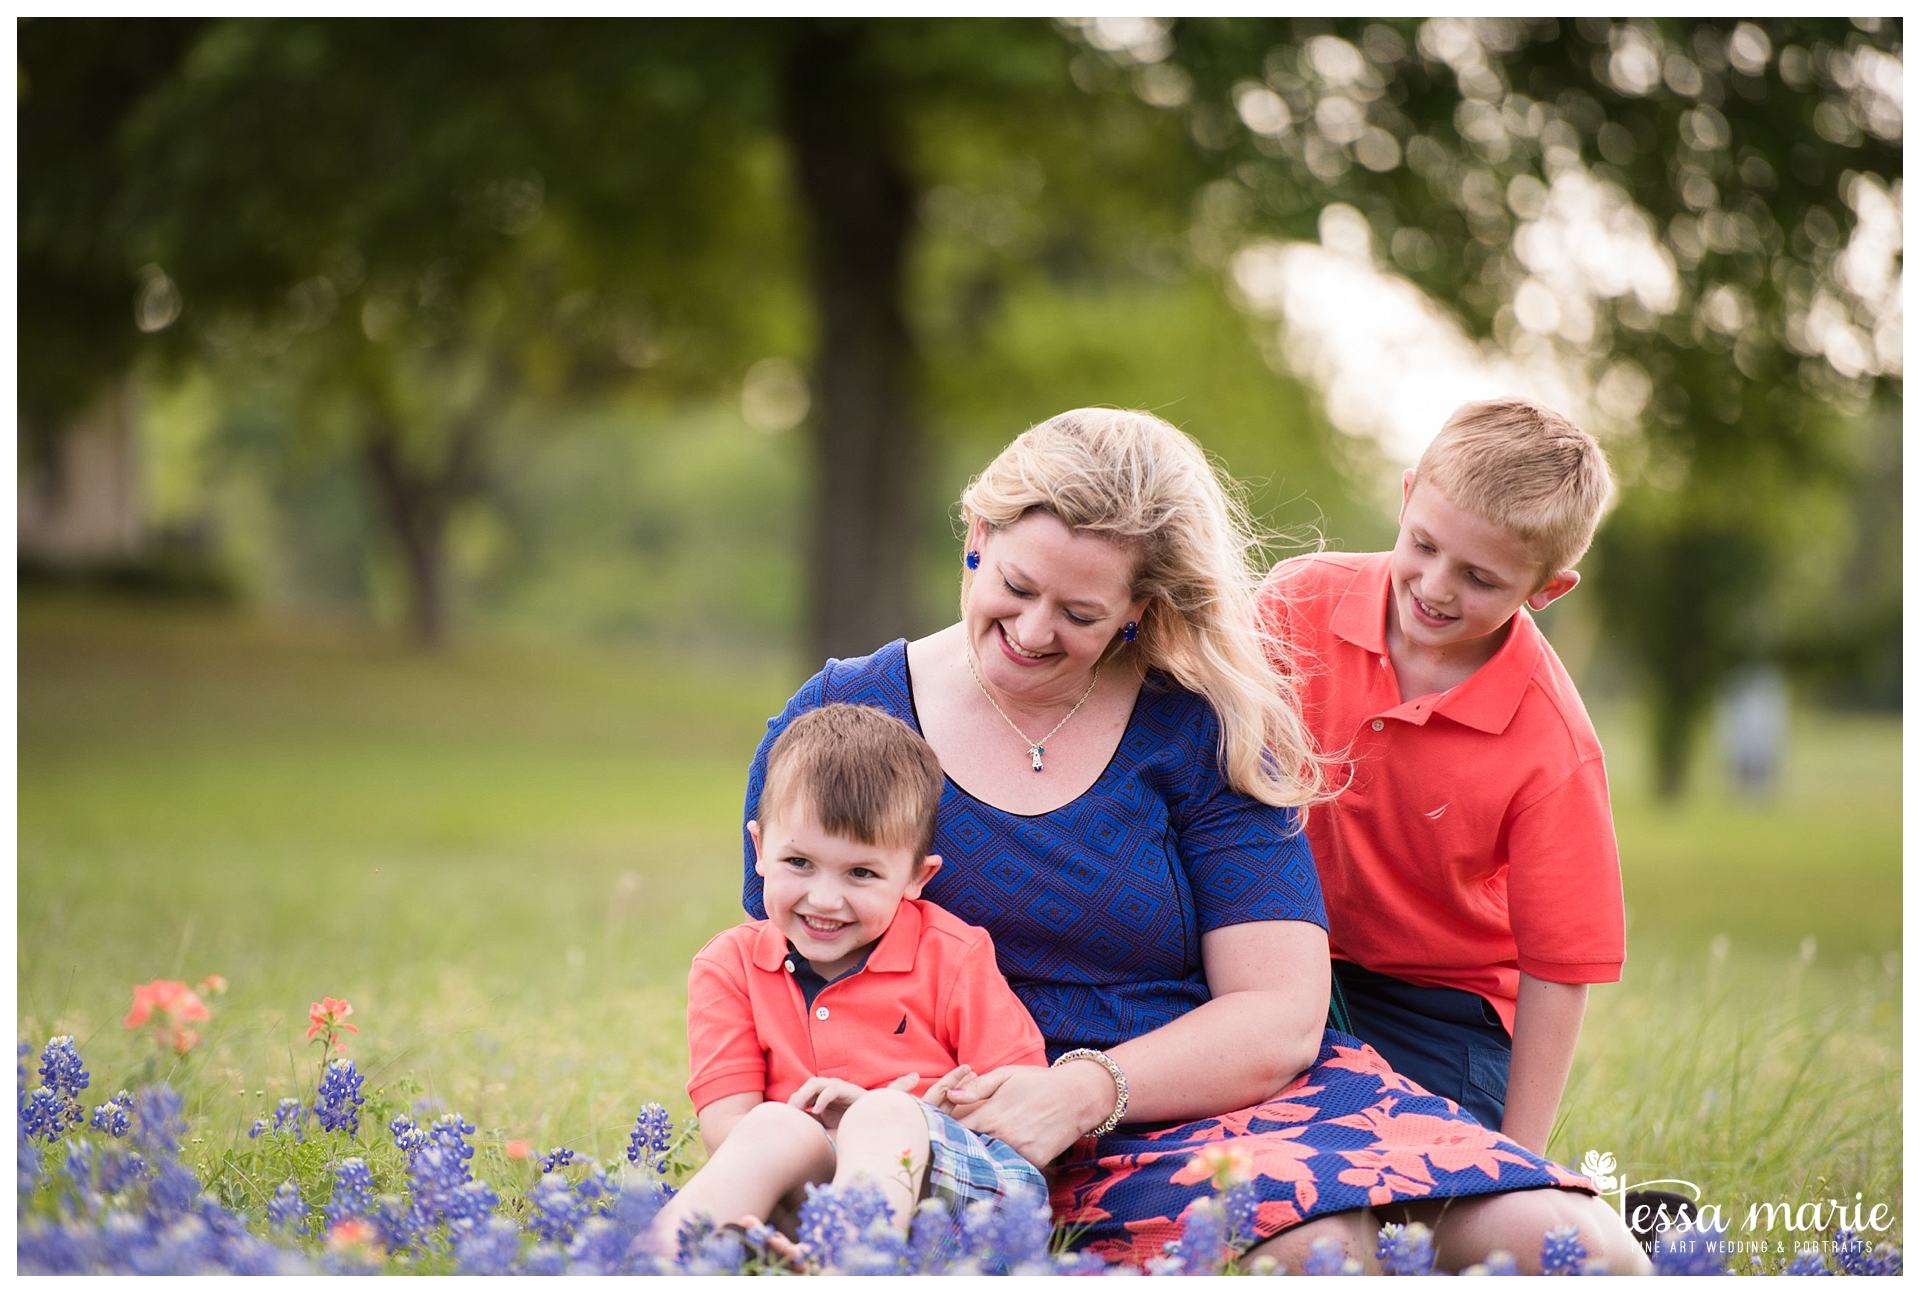 tessa_marie_weddings_legacy_story_focused_wedding_pictures_atlanta_wedding_photographer_family_pictures_portrait_Fine_art_memories_mothers_day_spring_moments_0223